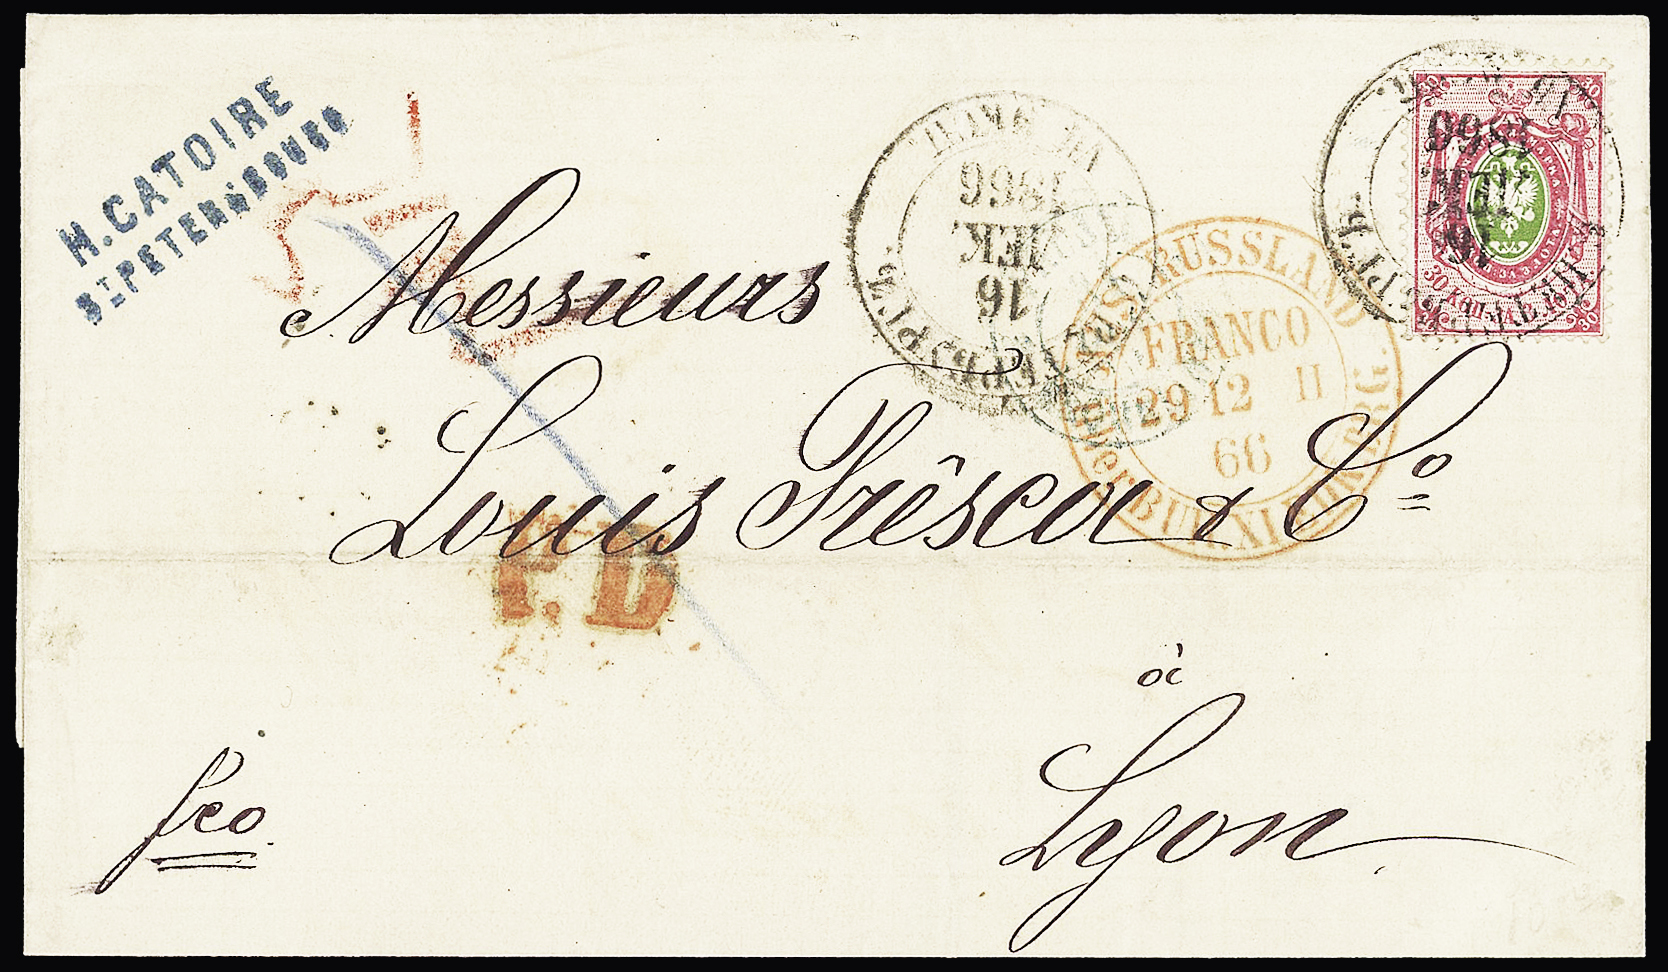 Lot 274 - Eastern Europe » Russia and USSR  -  Le Timbre Classique SA SALE ON OFFERS N ° 37 PARIS